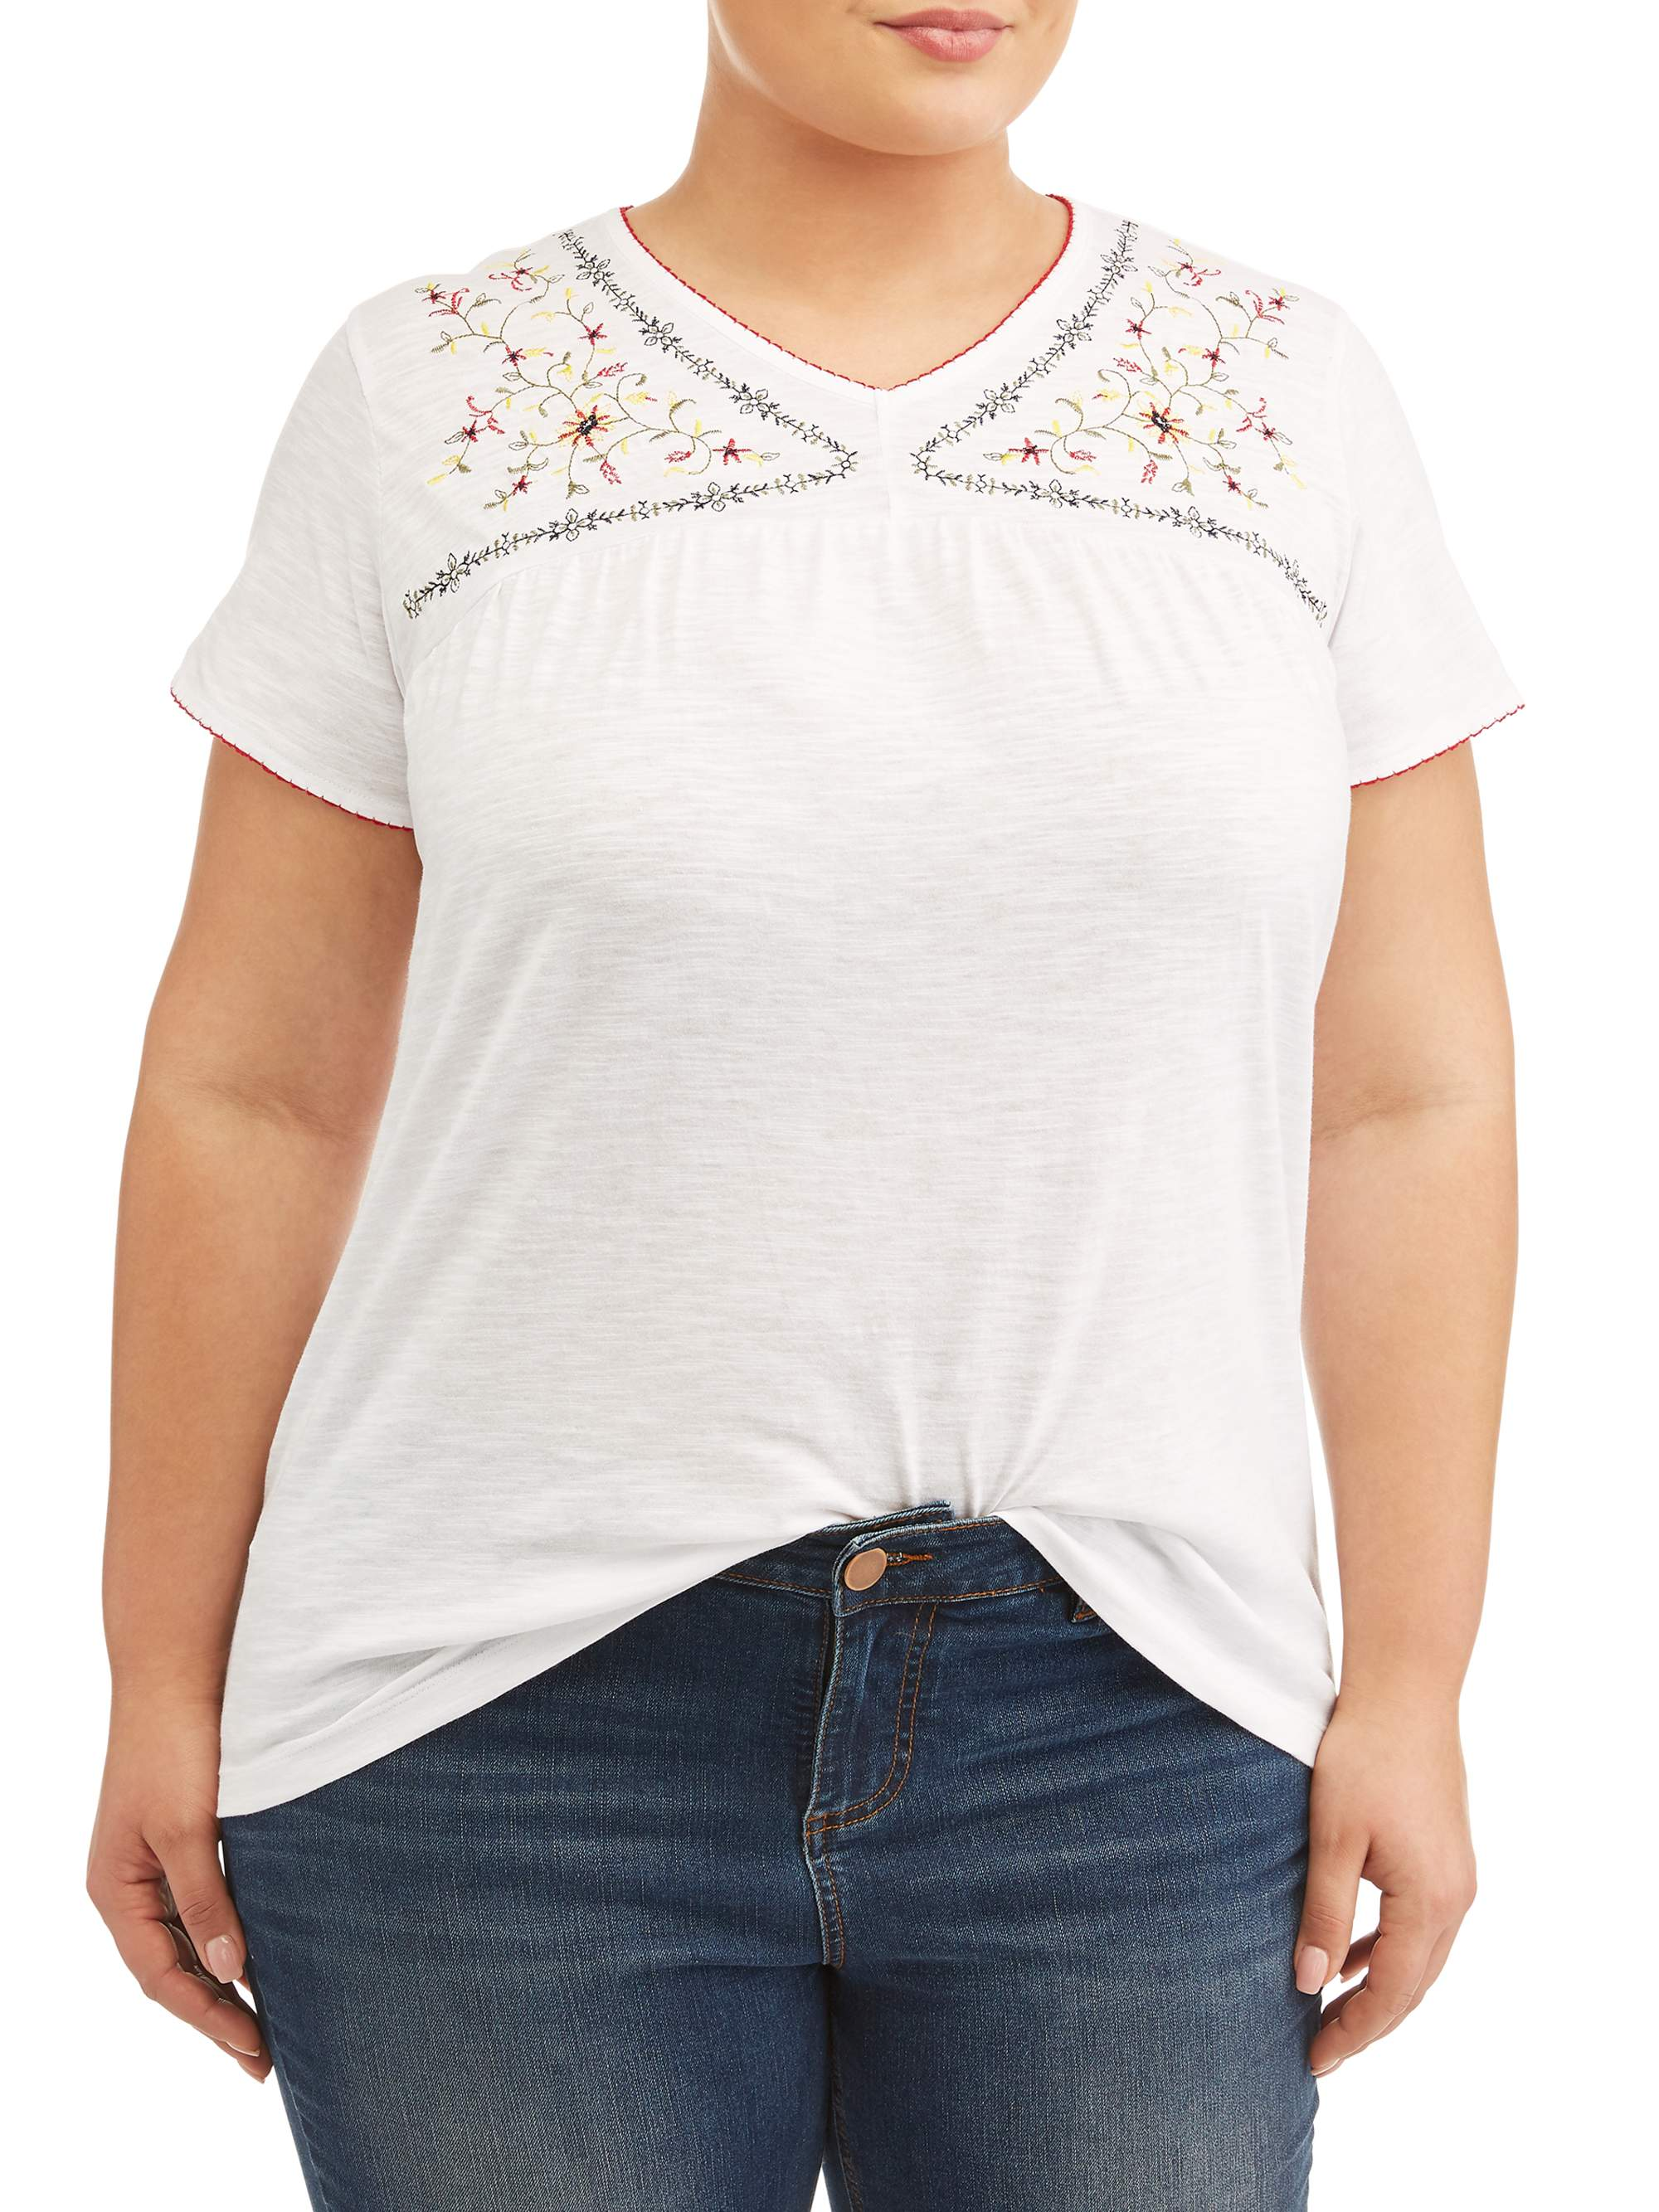 Women's Plus Size Embroided V Neck Top